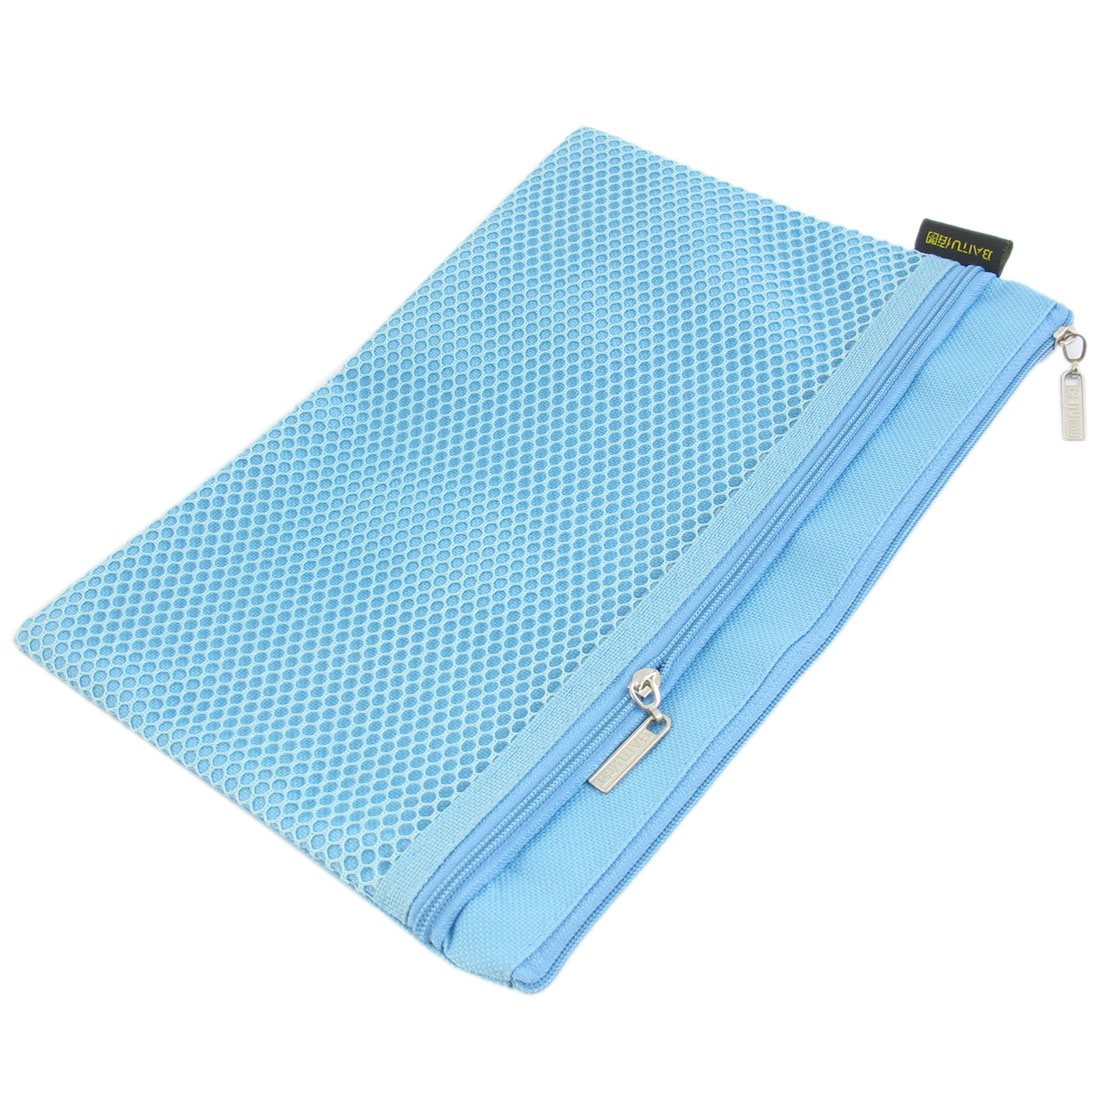 Zipper Closure 2 Pockets Canvas A5 File Bag Document Holder Blue